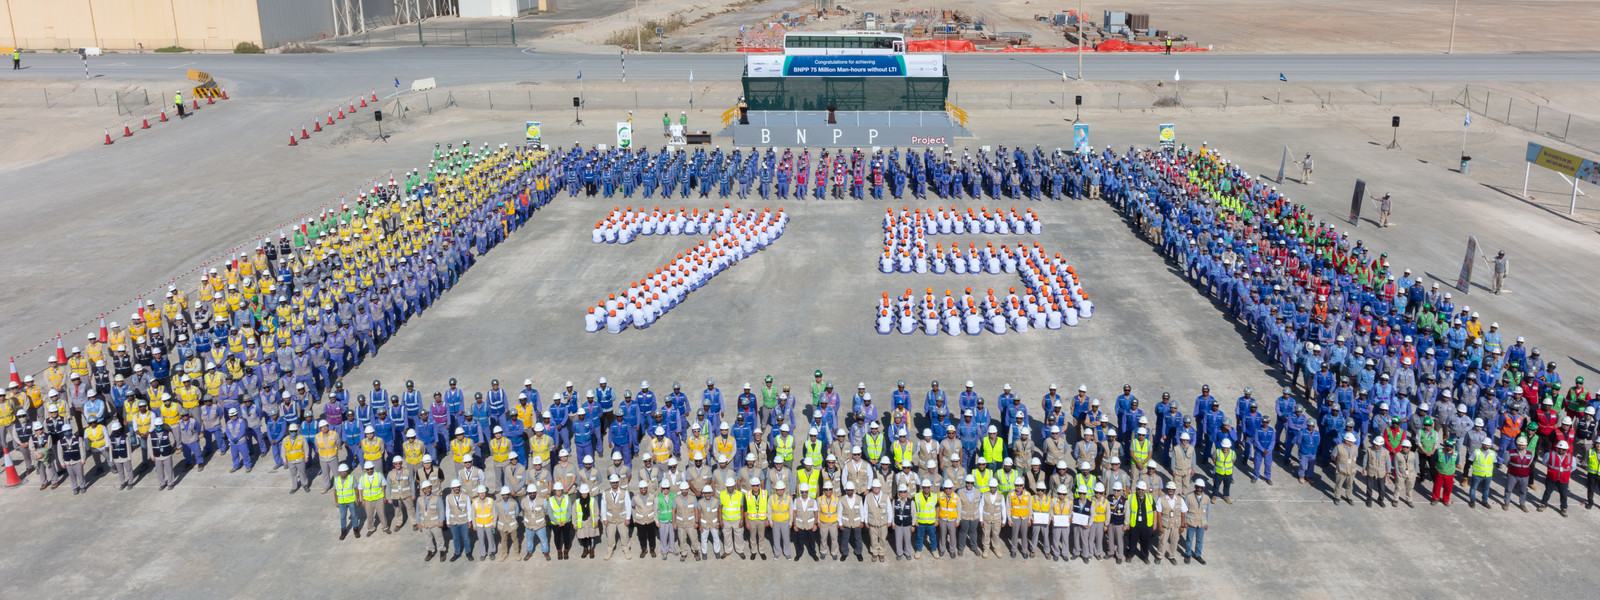 enec-celebrates-the-achievement-of-75-million-safe-work-hours-without-a-lost-time-injury-5e282954a2ed5.jpg (Gallery Image)